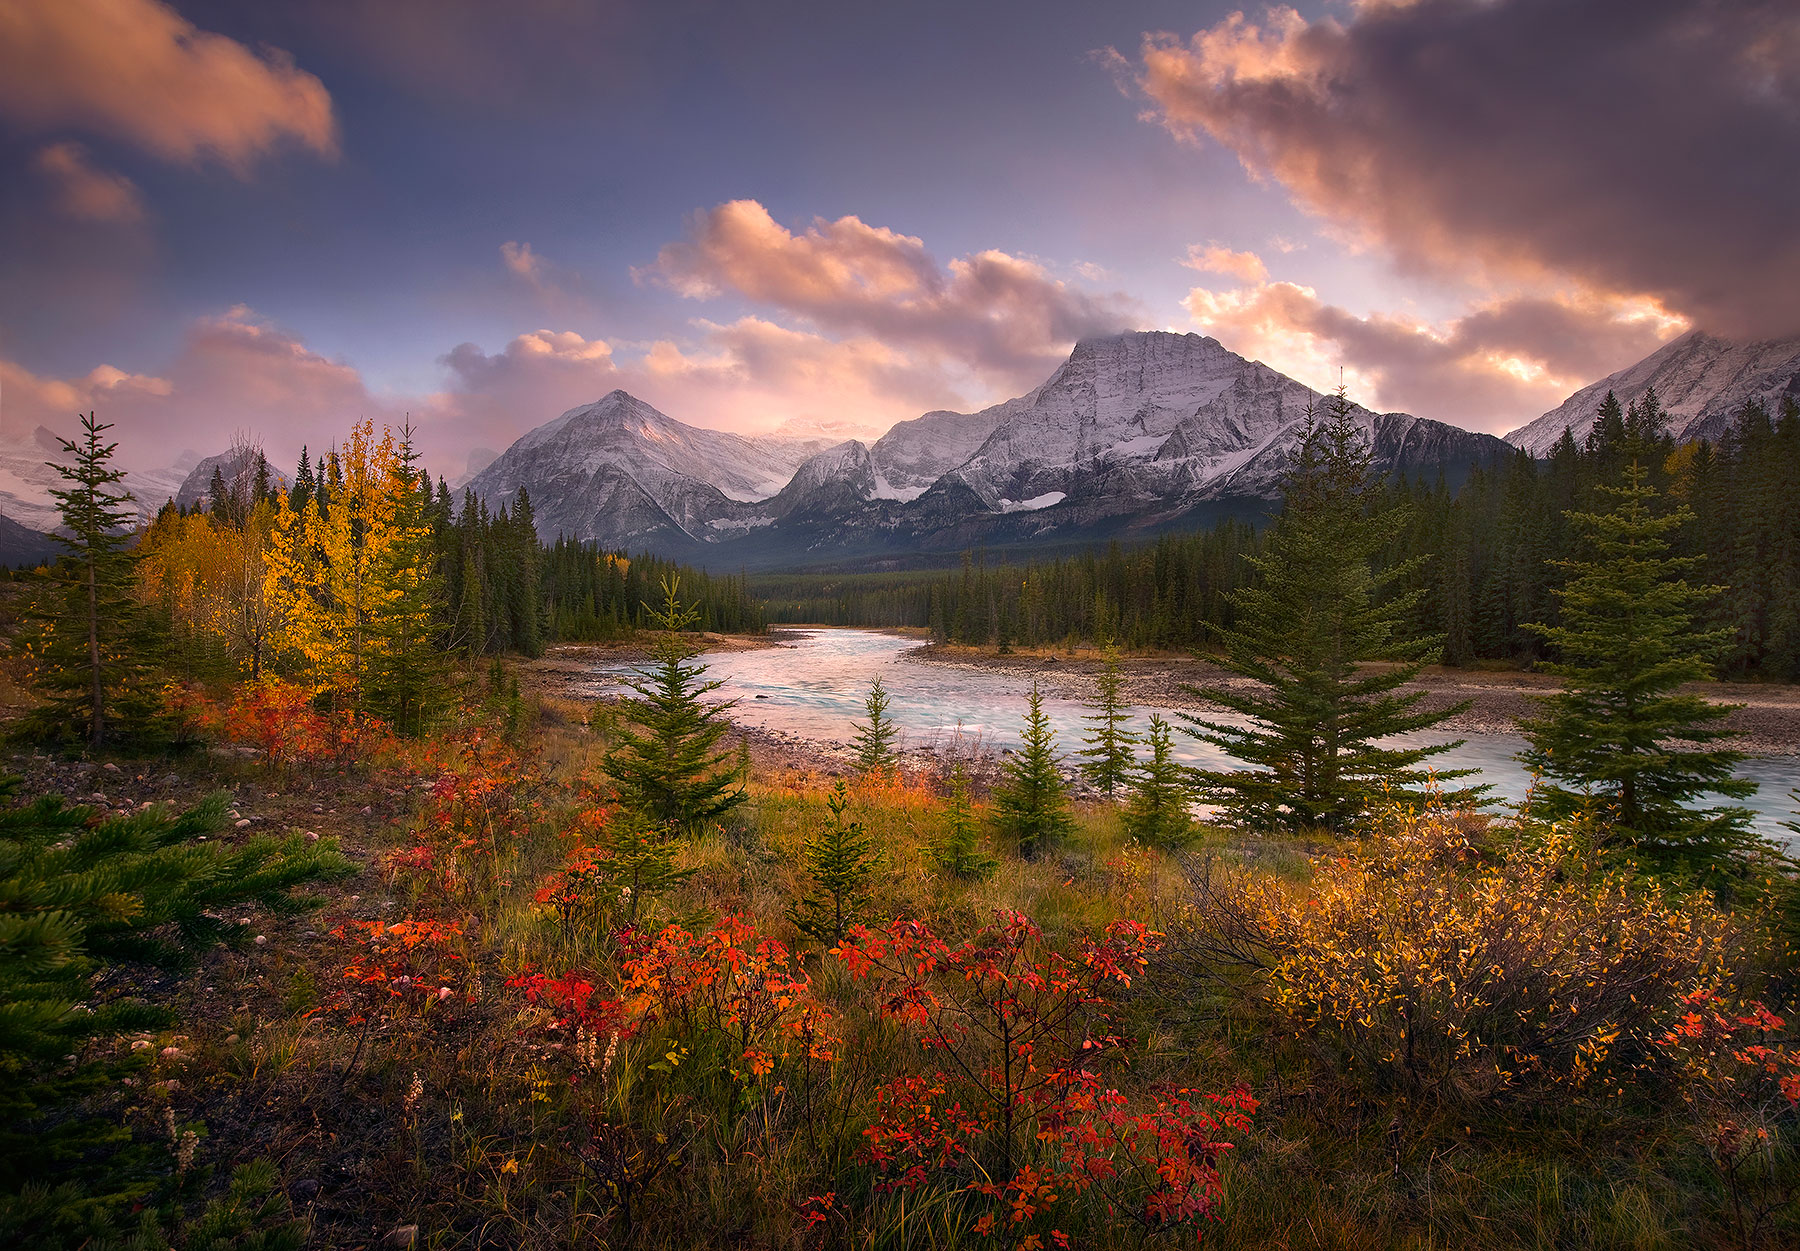 Vibrant fall foliage including Wild Rose, Aspen, Willow and Cottonwood along the shores of Jasper's Athabasca River with sunset...